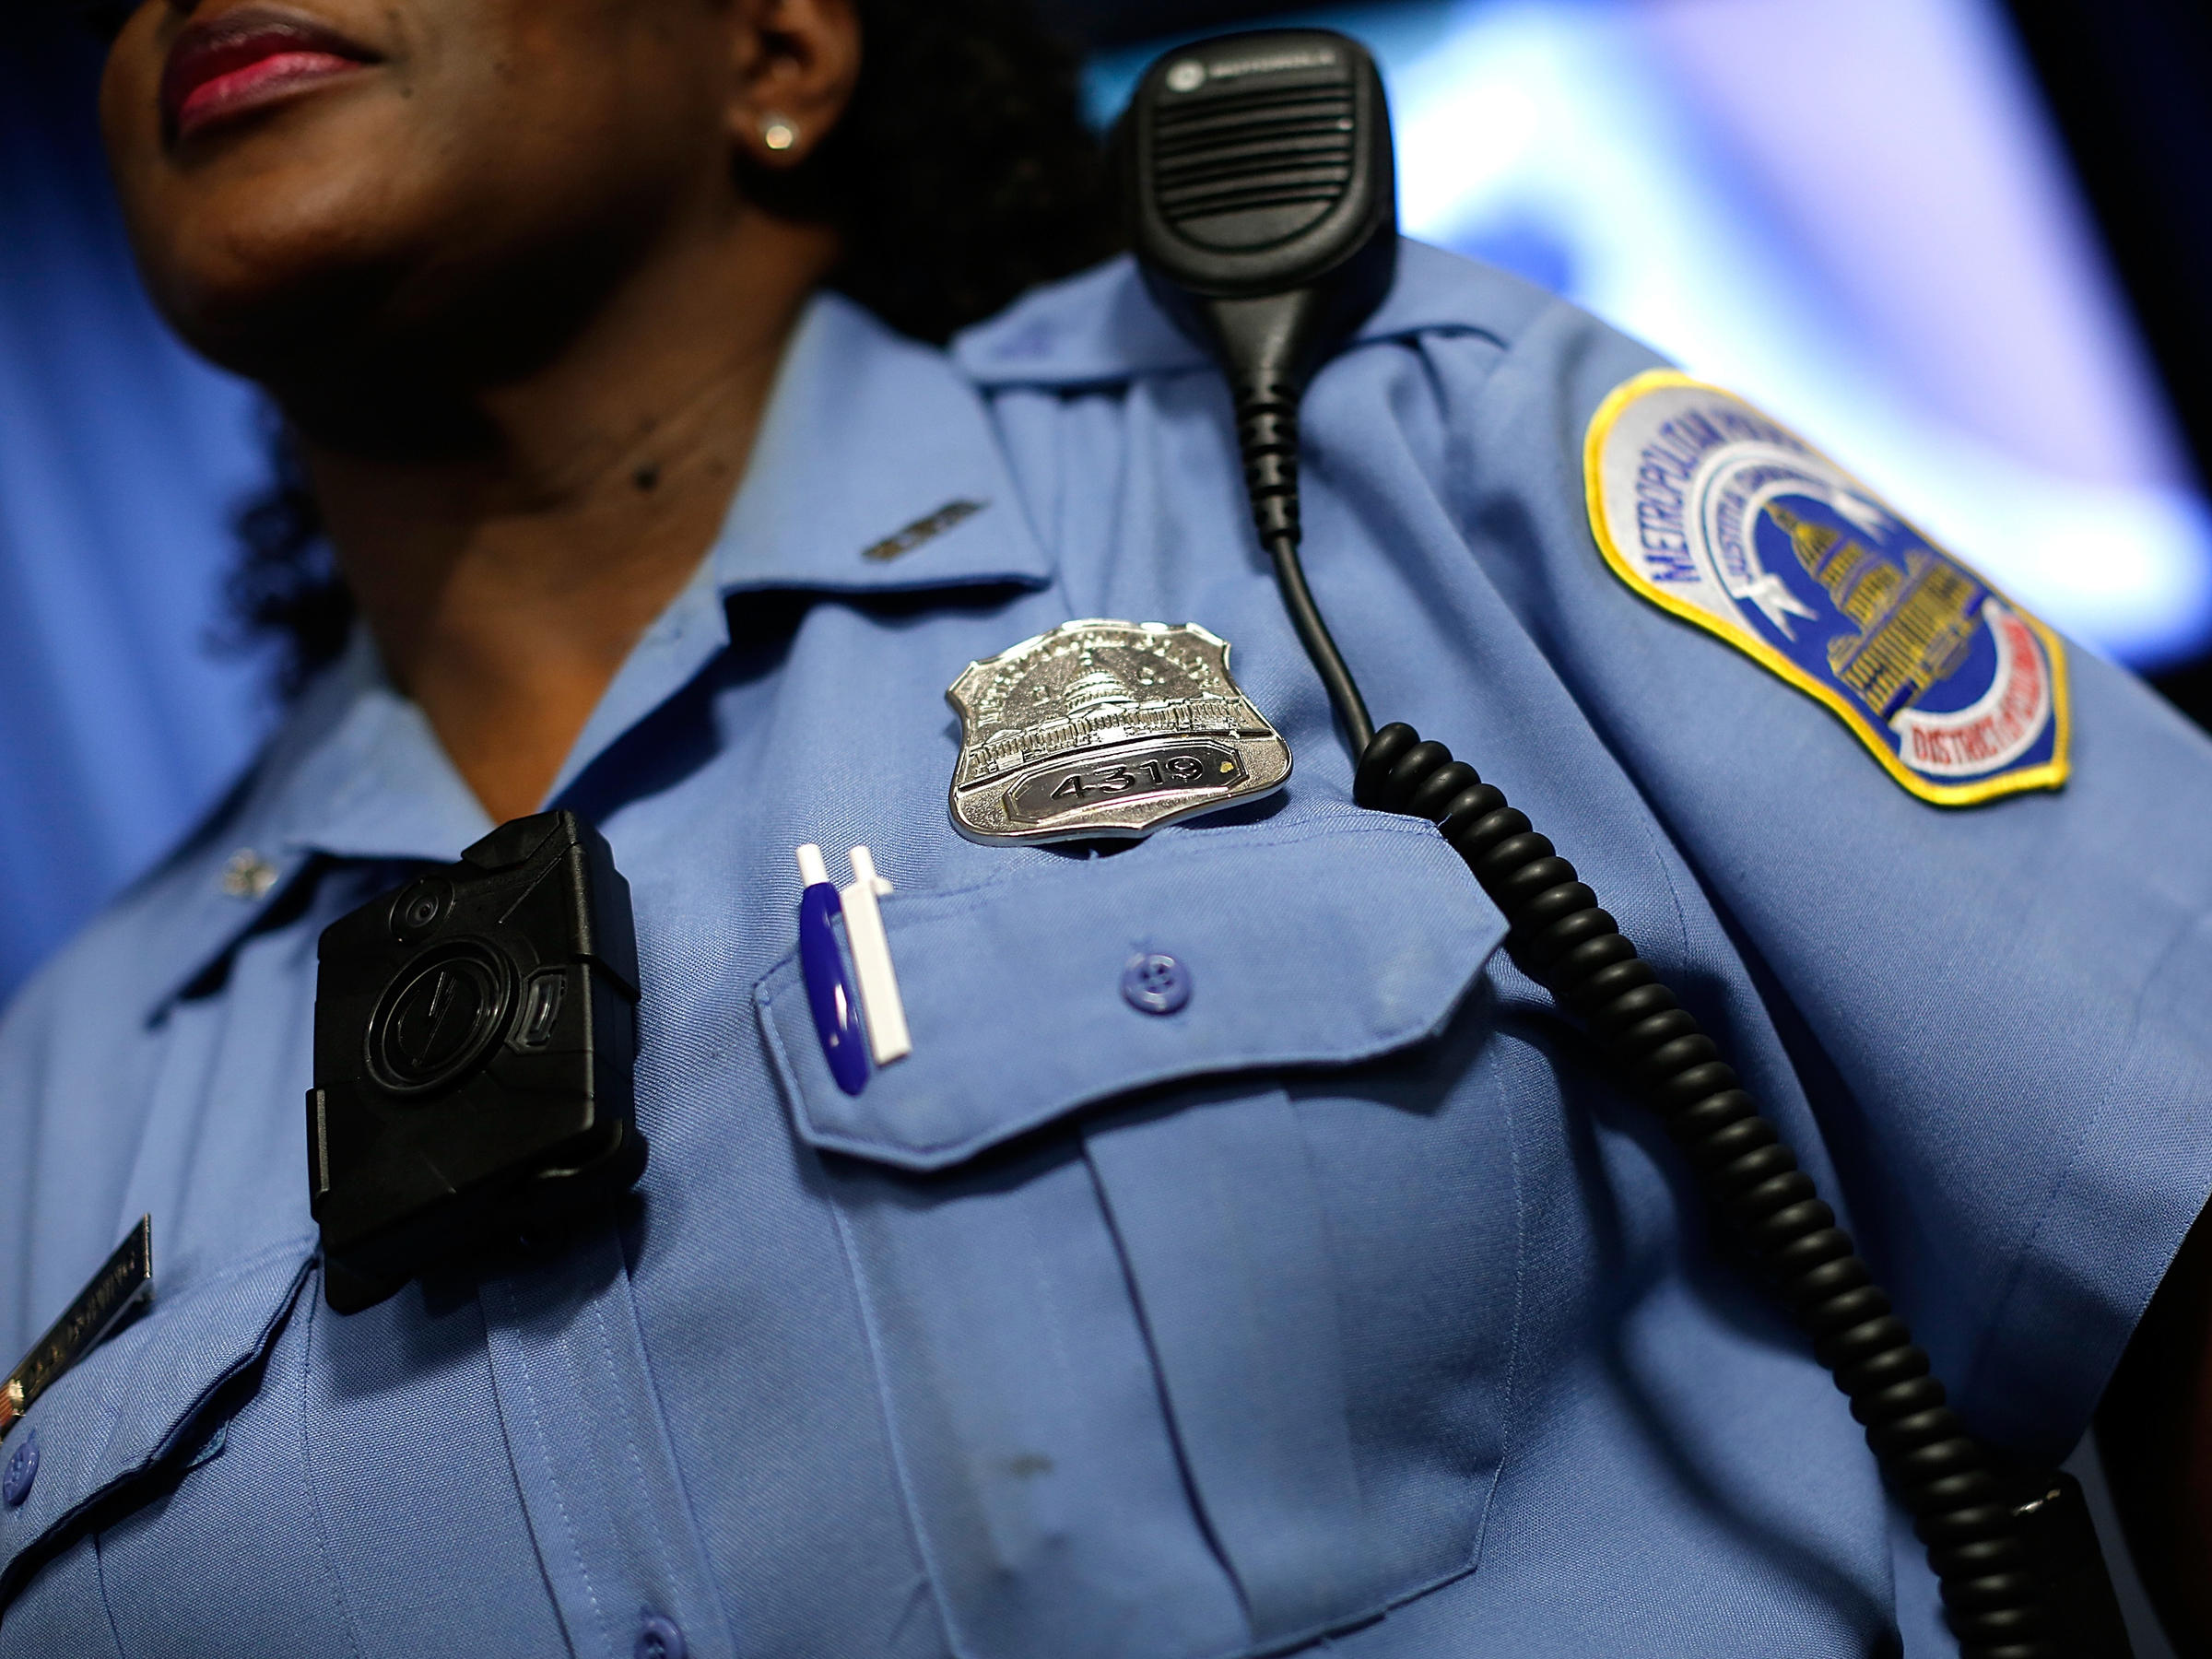 Unethical behavior as a police officer